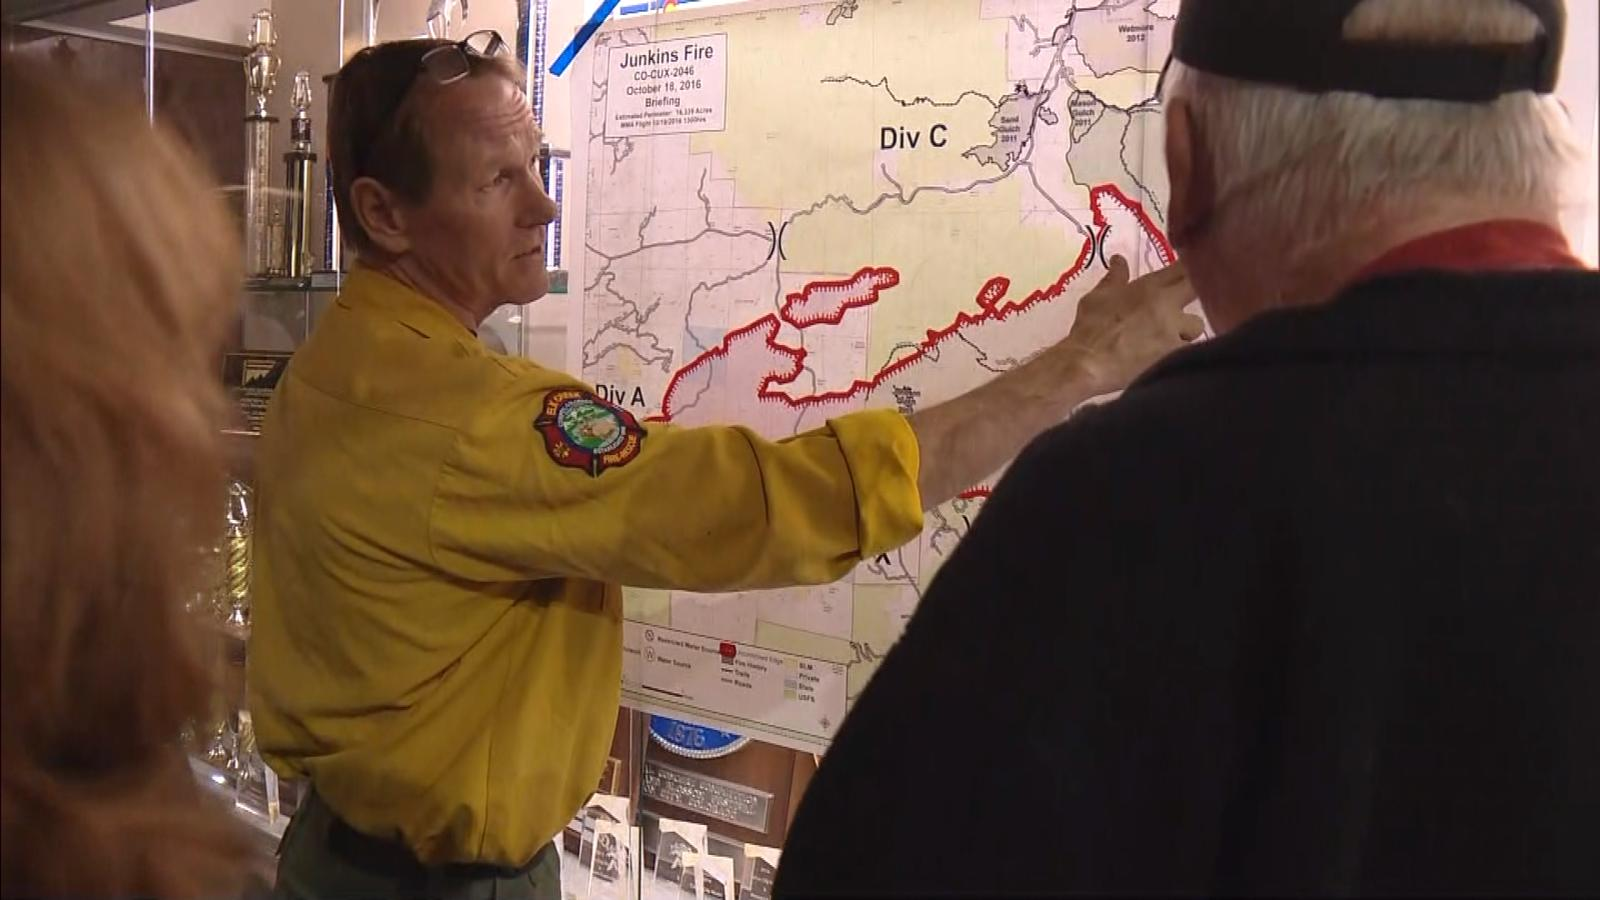 A wildland official shows a resident the map of the Junkins Fire on Oct. 19, 2016. (credit: CBS)